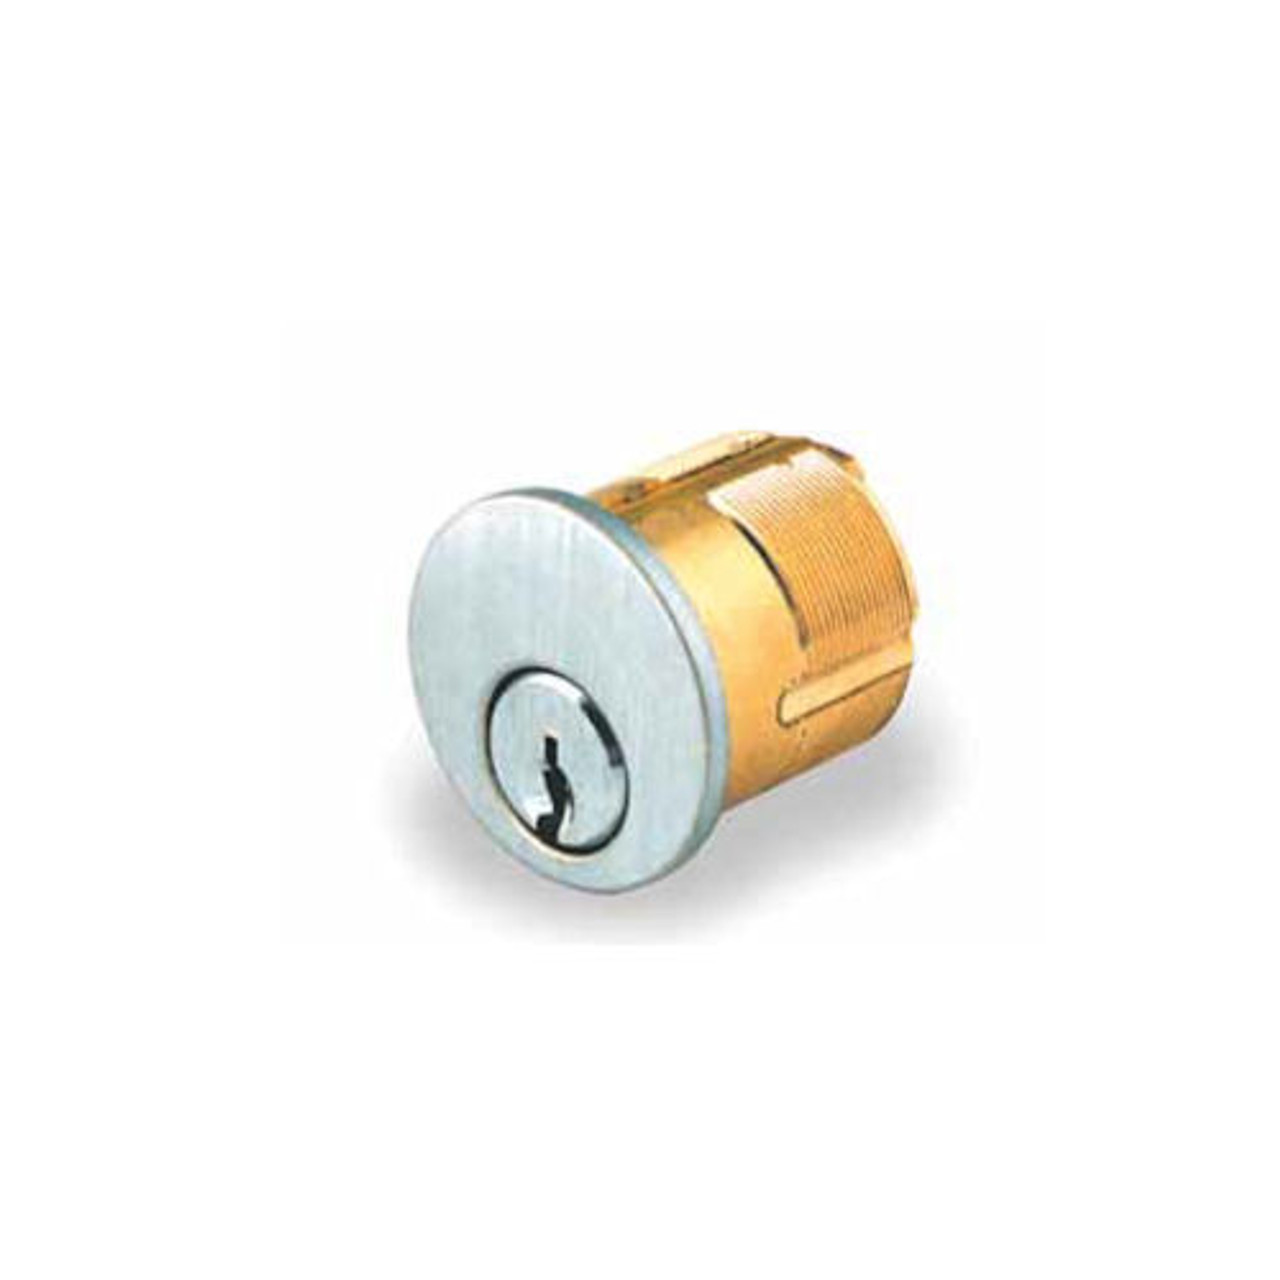 Mortise Cylinders, Parts & Accessories